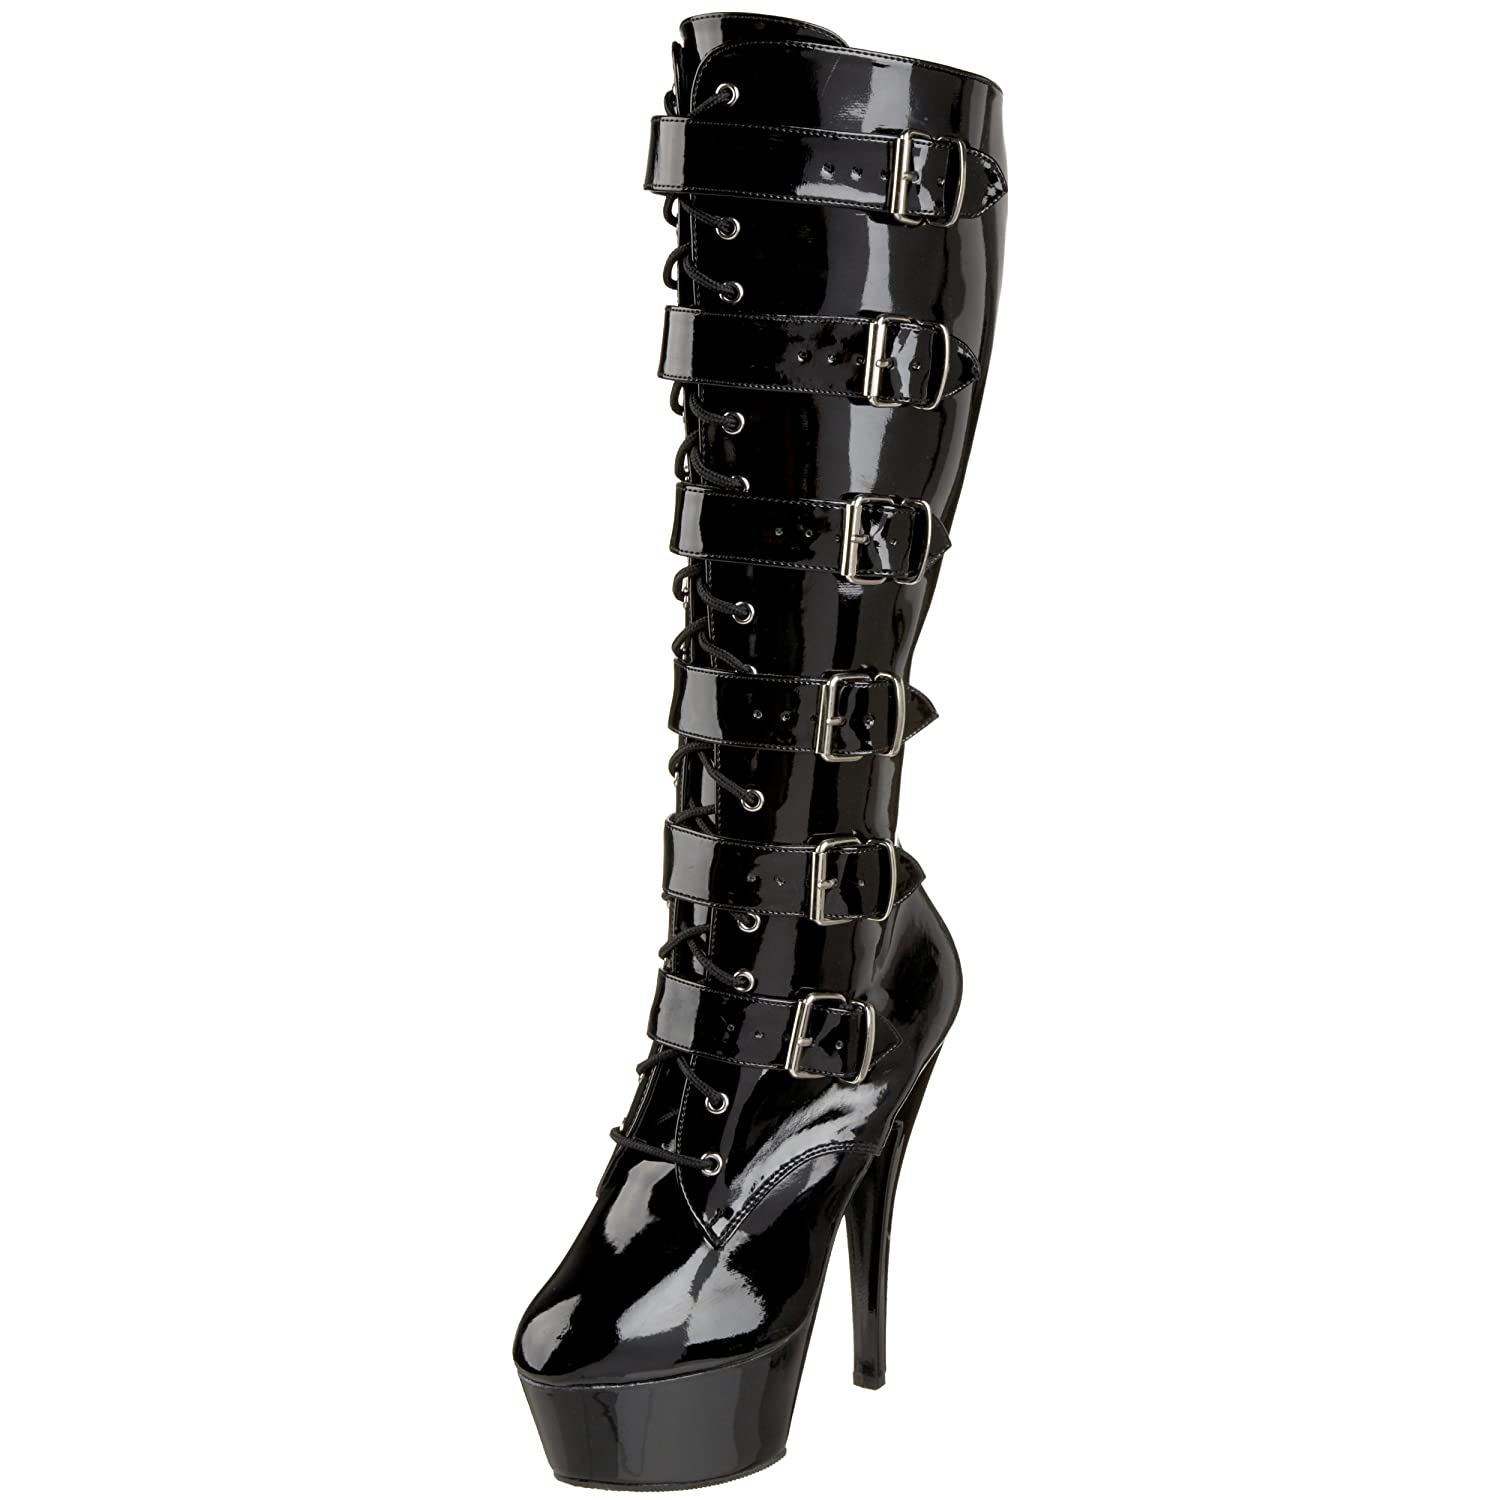 Pleaser Women's Kiss-2049 Platform Boot B000AD0XA4 6 B(M) US|Black Patent/Black